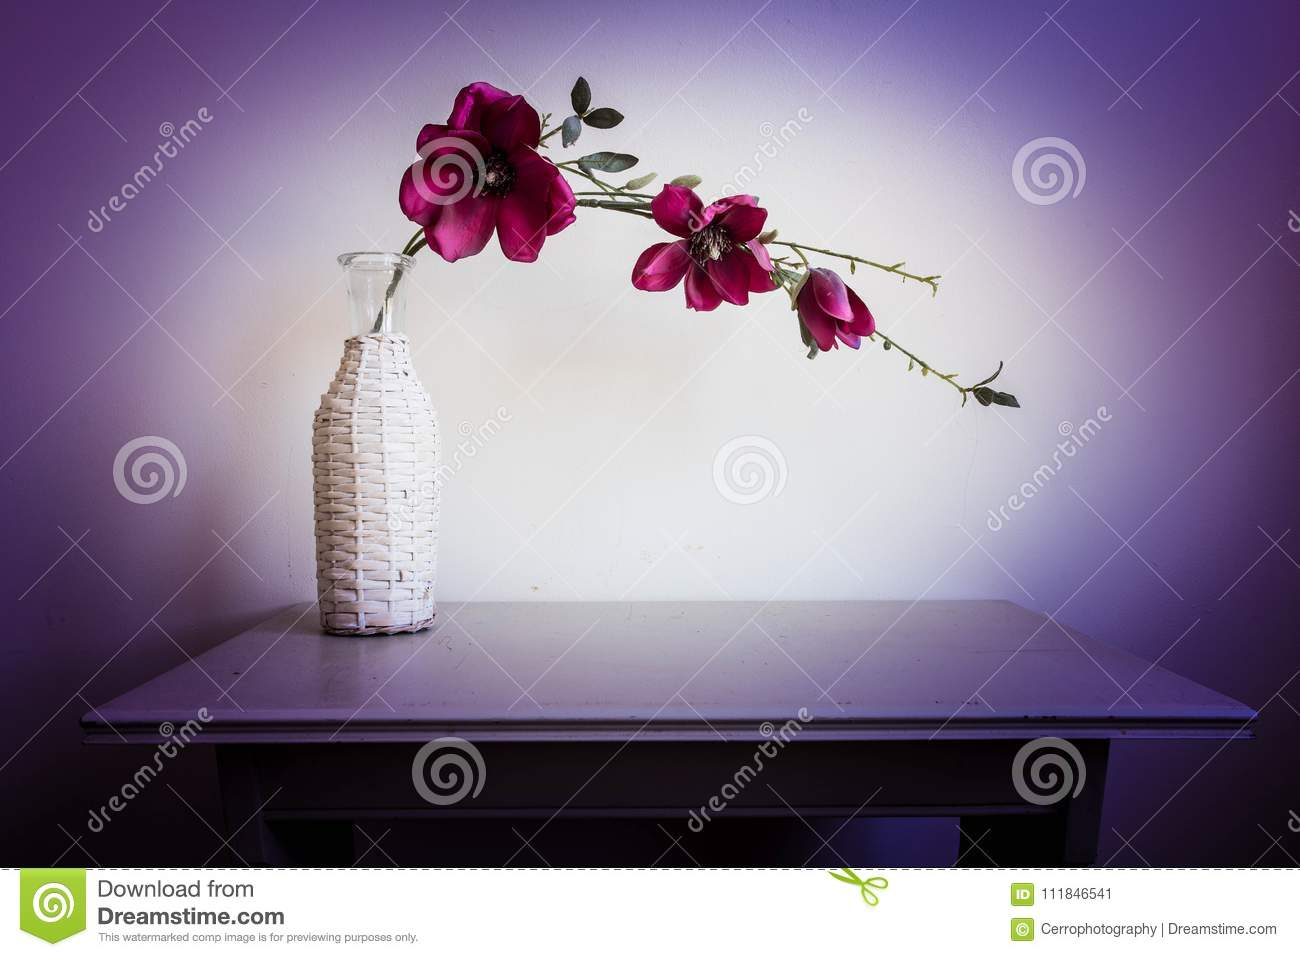 Violet orchid flowers in white vase